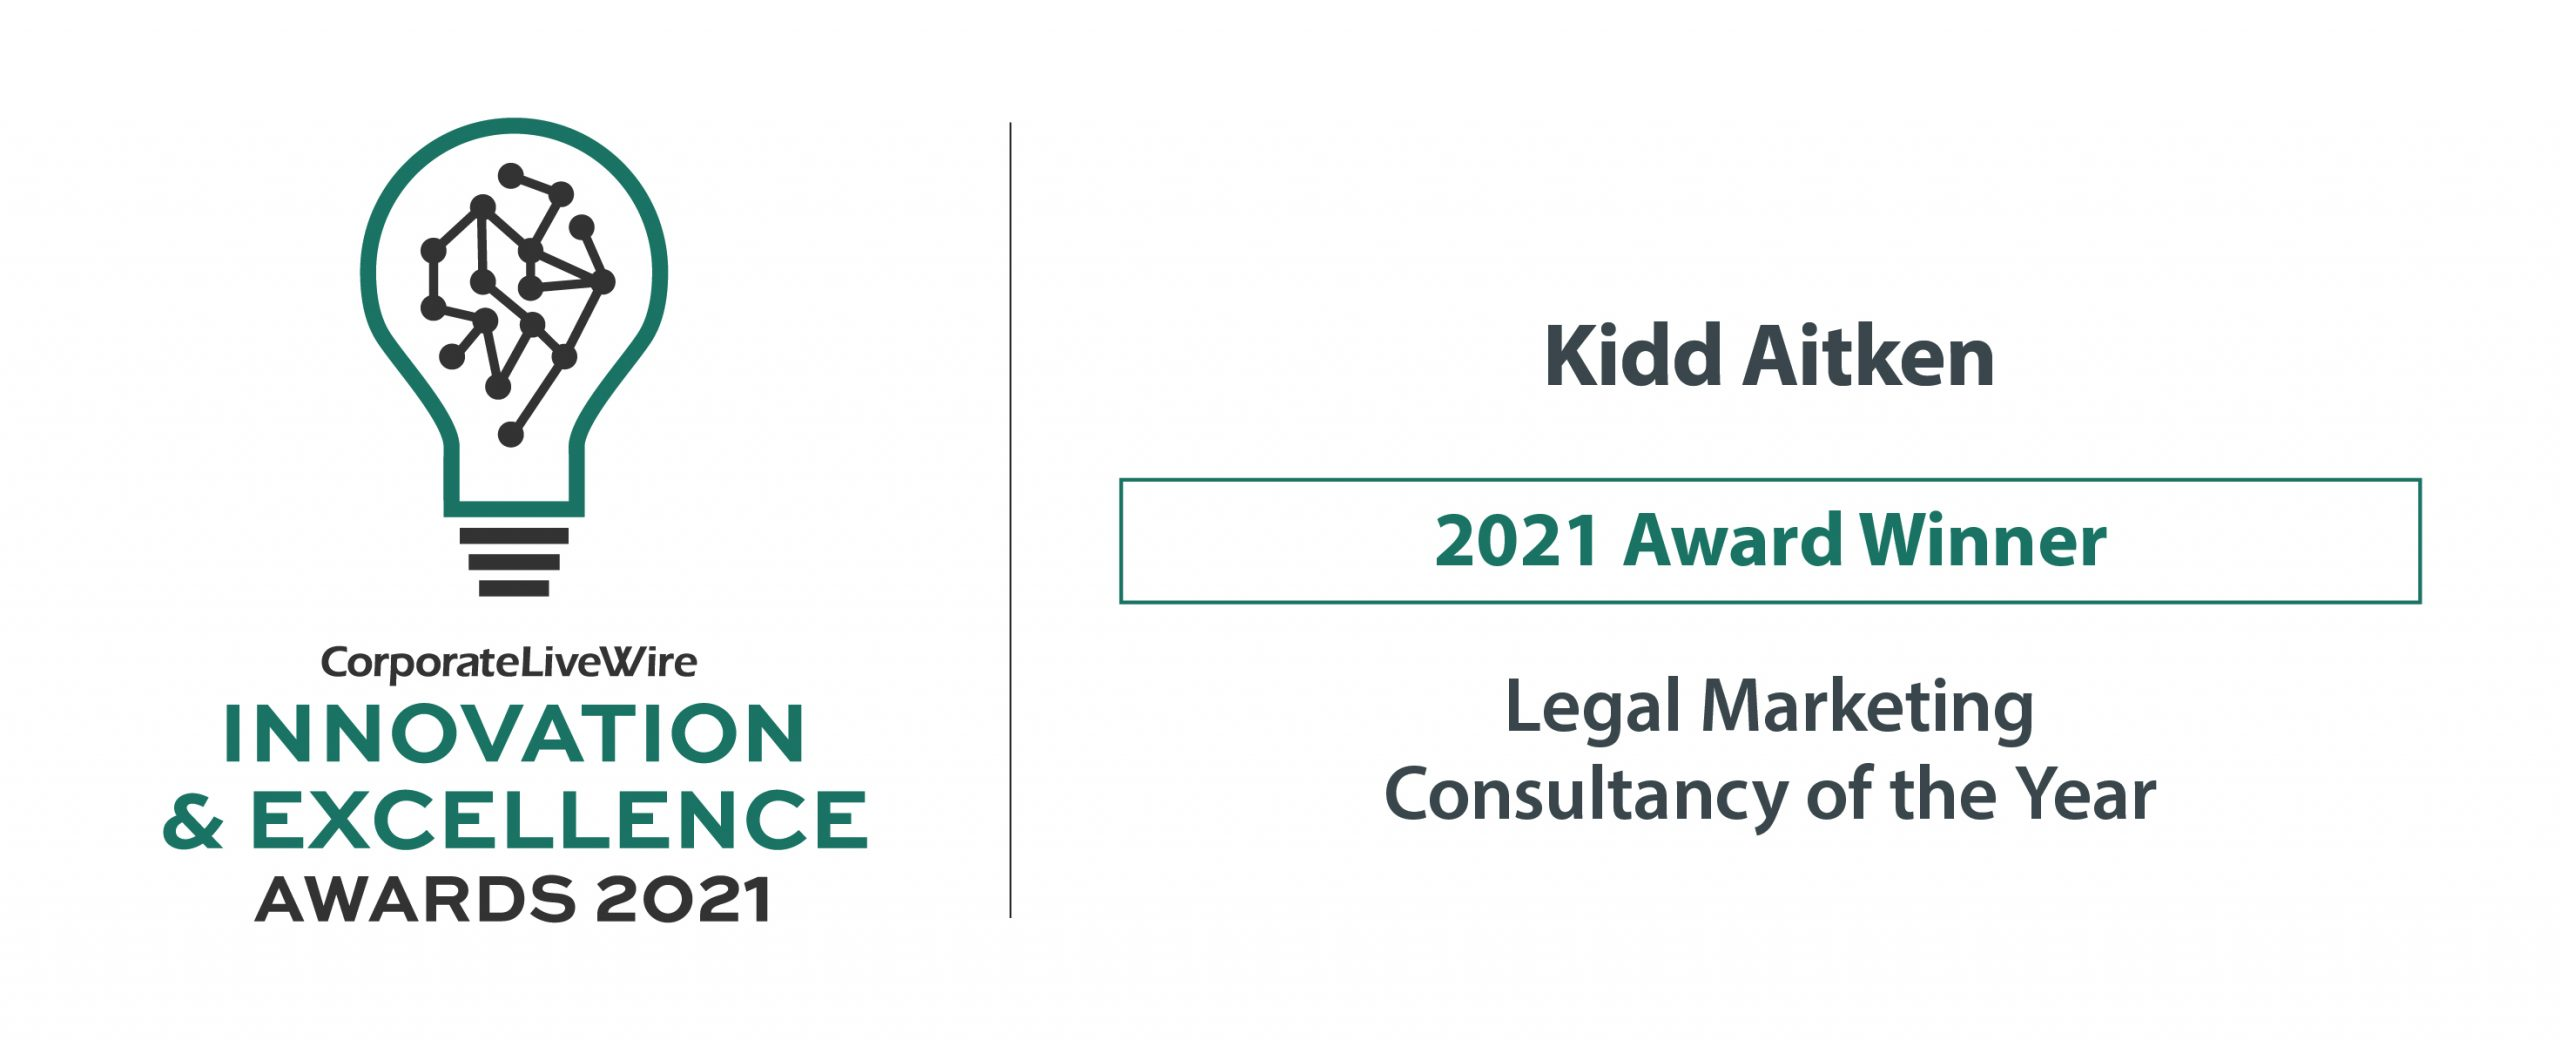 Legal Marketing Consultancy of the Year